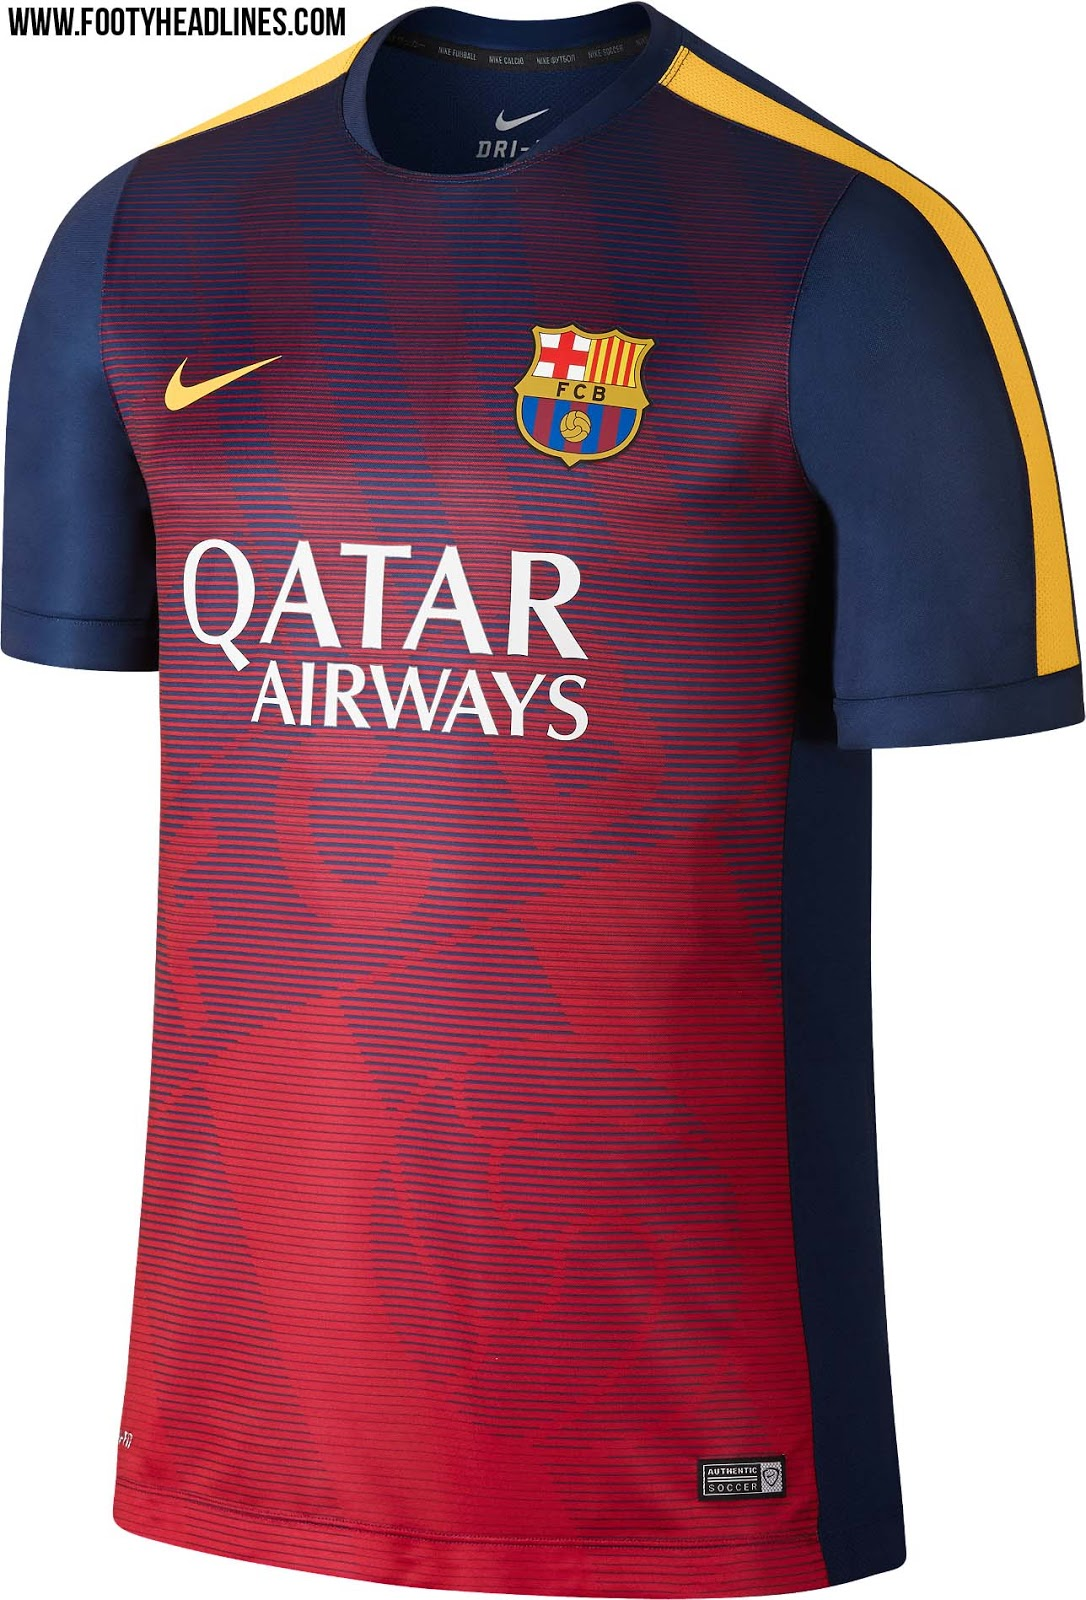 new fc barcelona 2015 training and pre match shirts released footy headlines. Black Bedroom Furniture Sets. Home Design Ideas